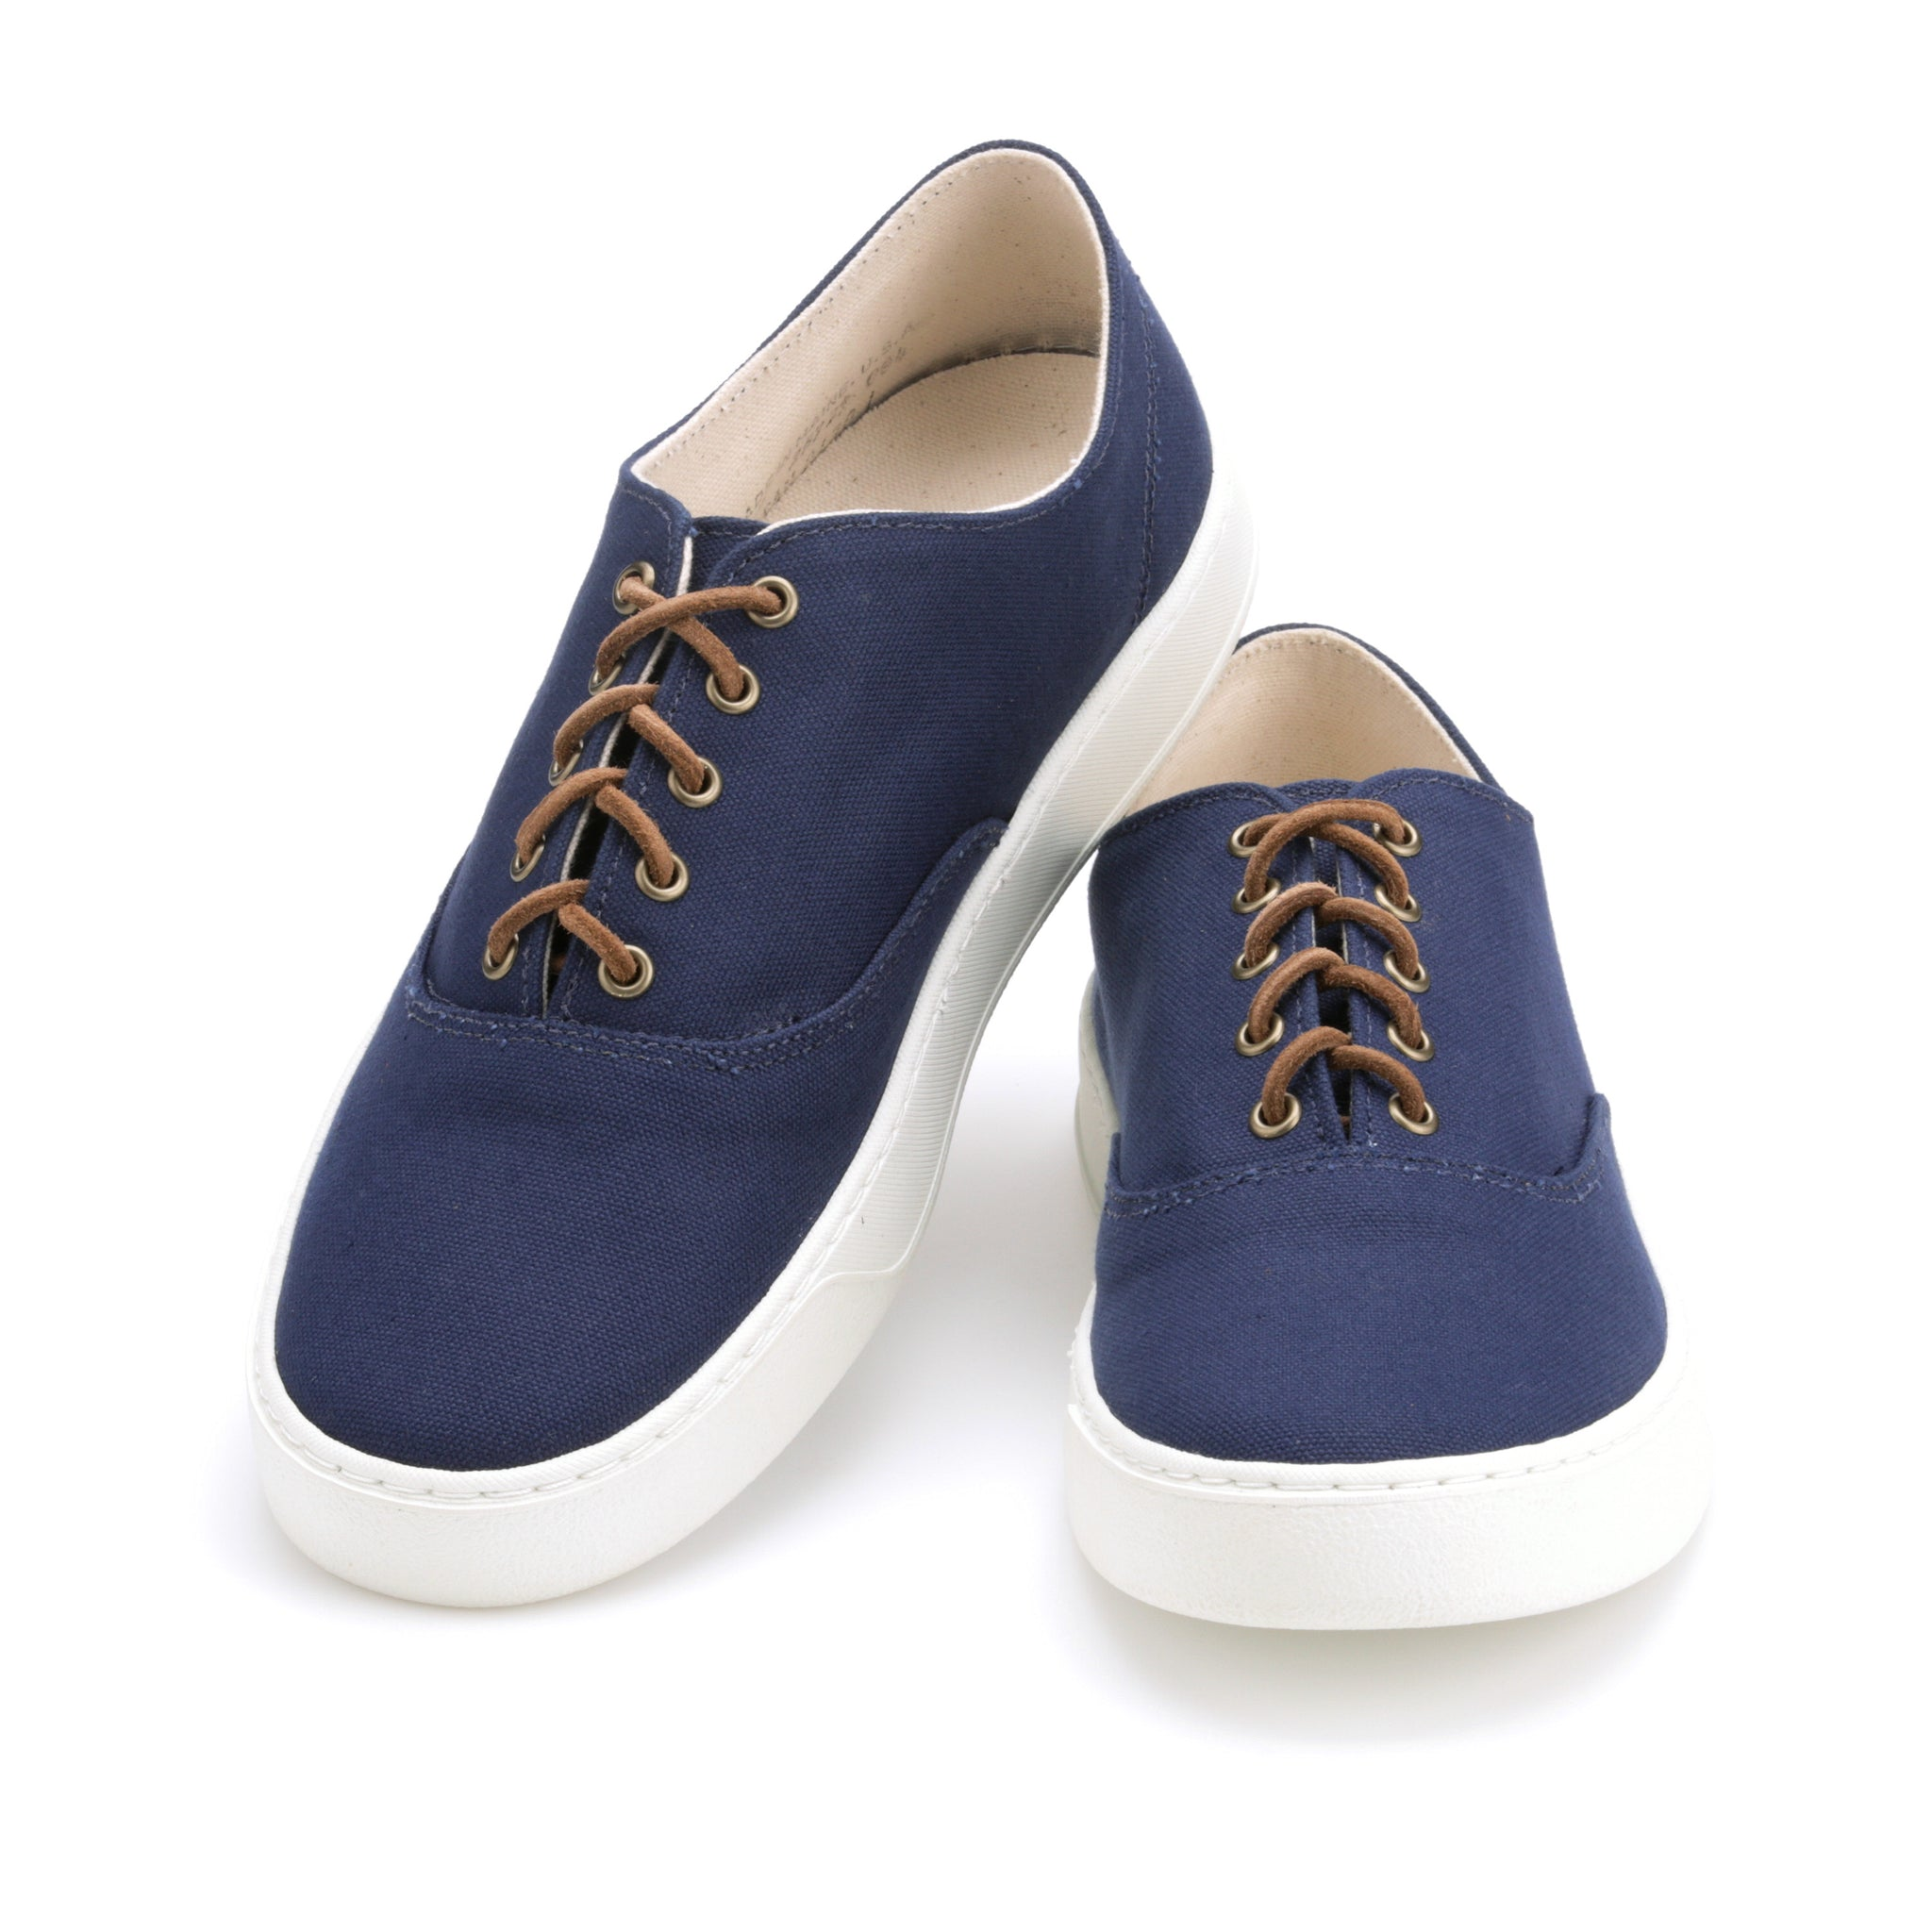 Carson Low - Classic Navy #10 Cotton Duck